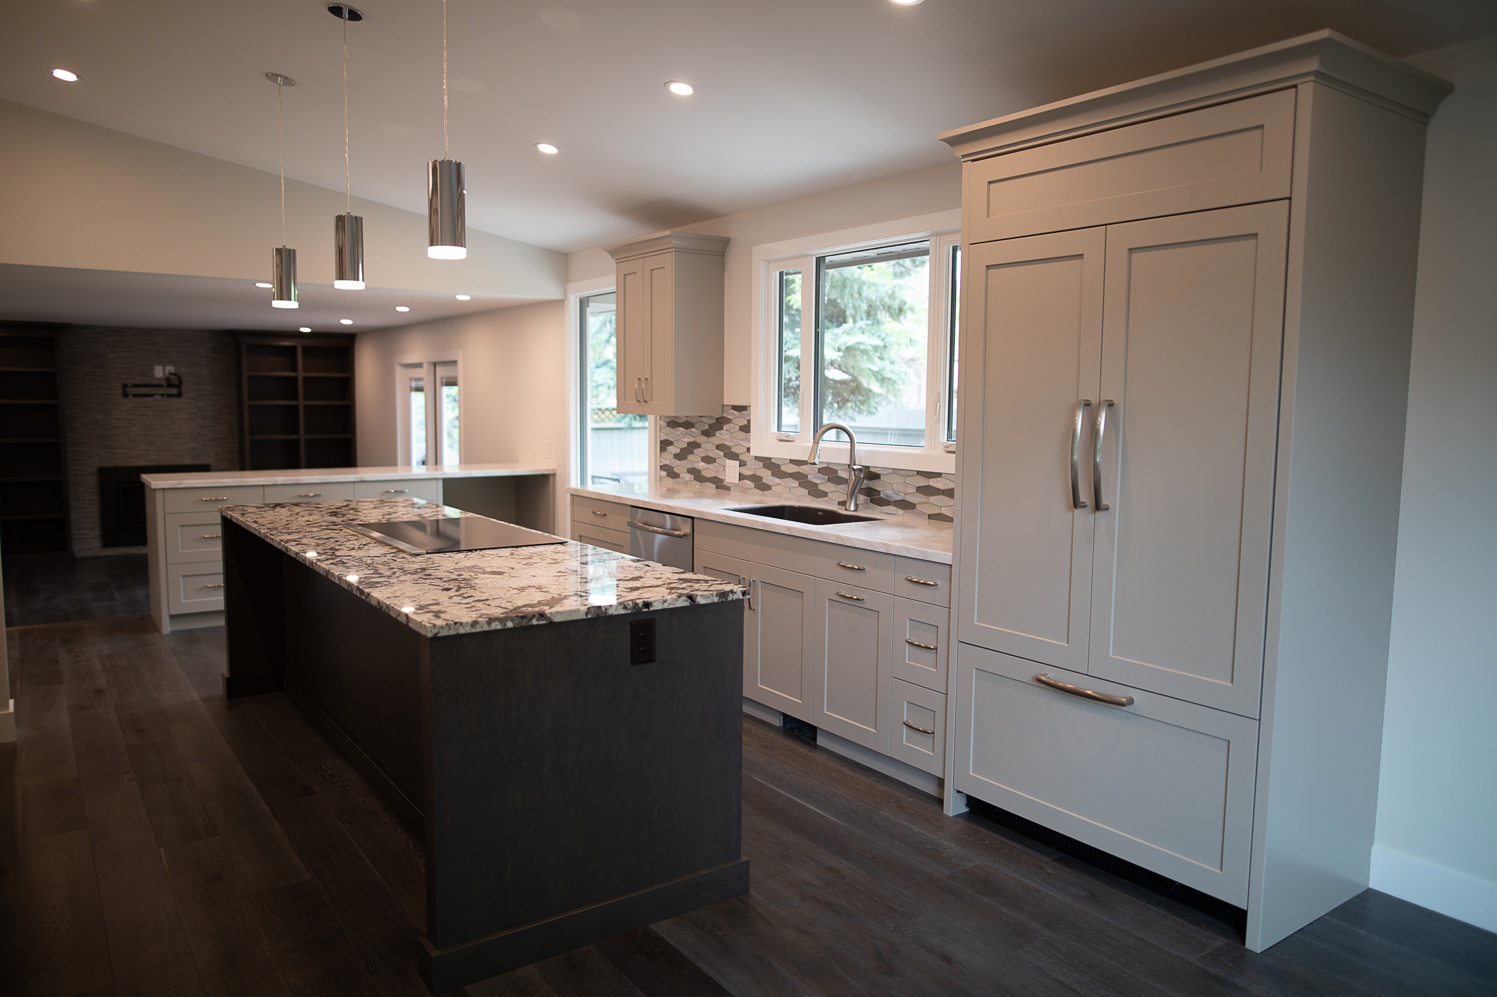 Interior photo of new kitchen showing granite countertops, light grey cabinets, dark wood floors, new vaulted ceiling and modern light fixtures.